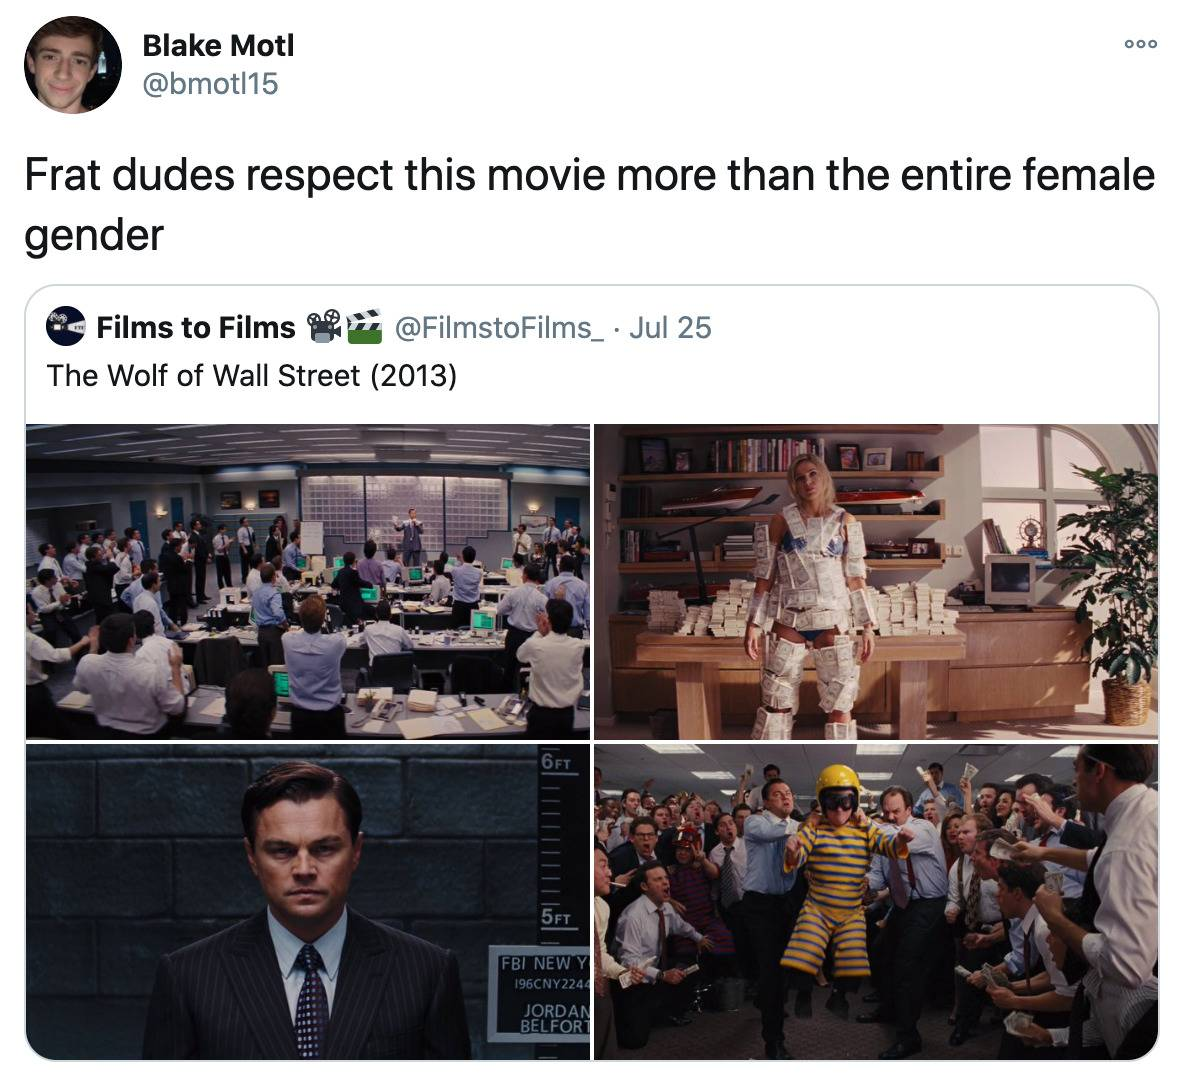 Frat dudes respect this movie (the wolf of wall street) more than the entire female gender